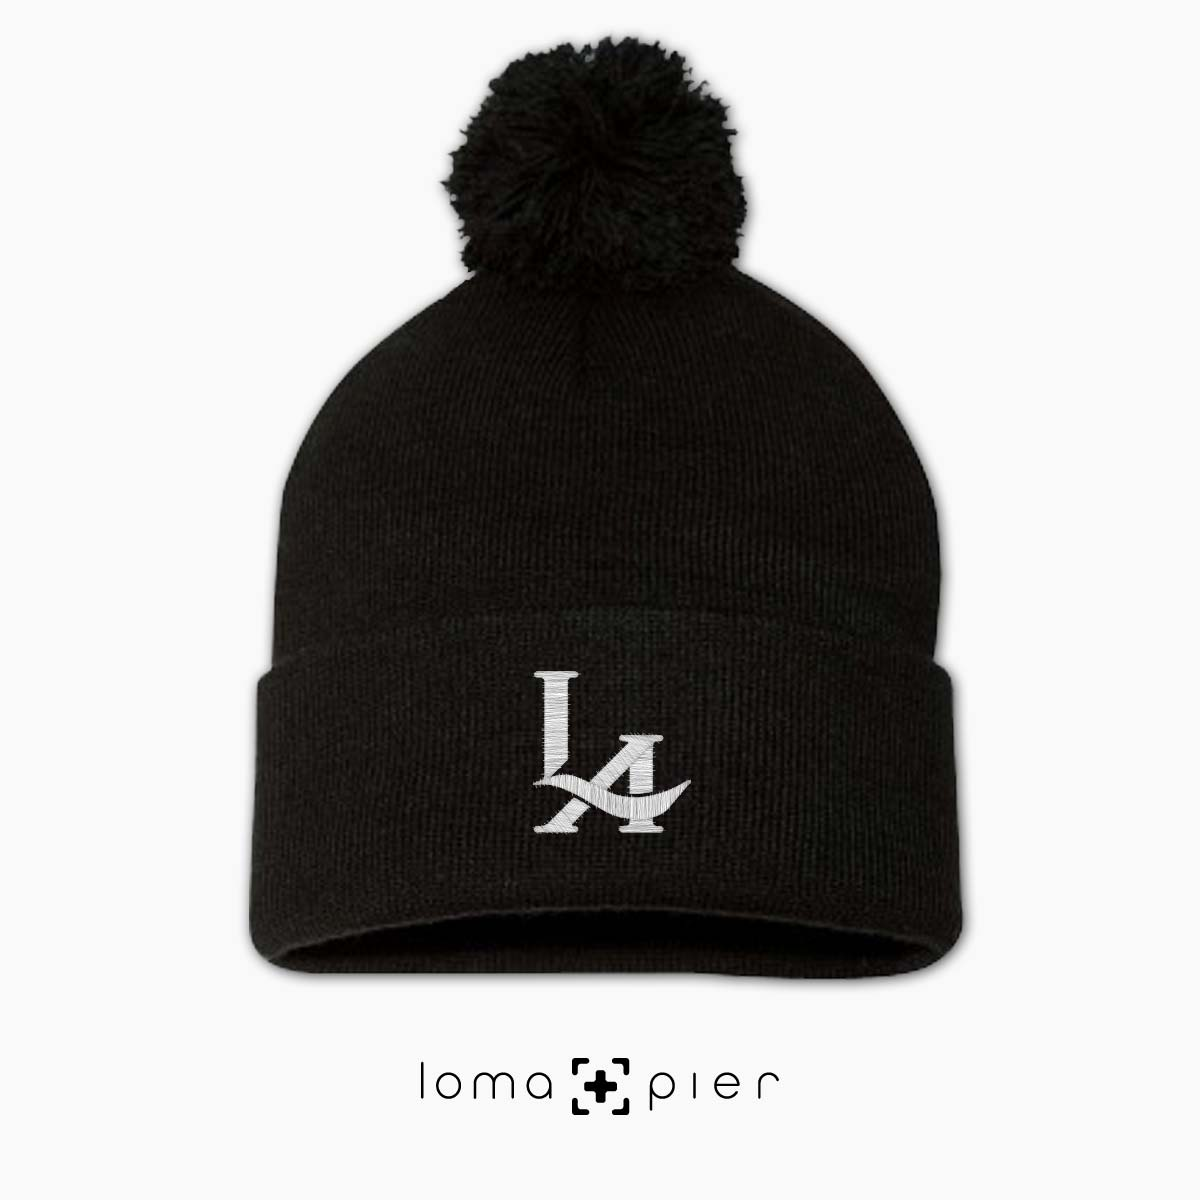 84bf4cb1977 los angeles LA LOGO icon embroidered on a black pom pom beanie by loma+pier